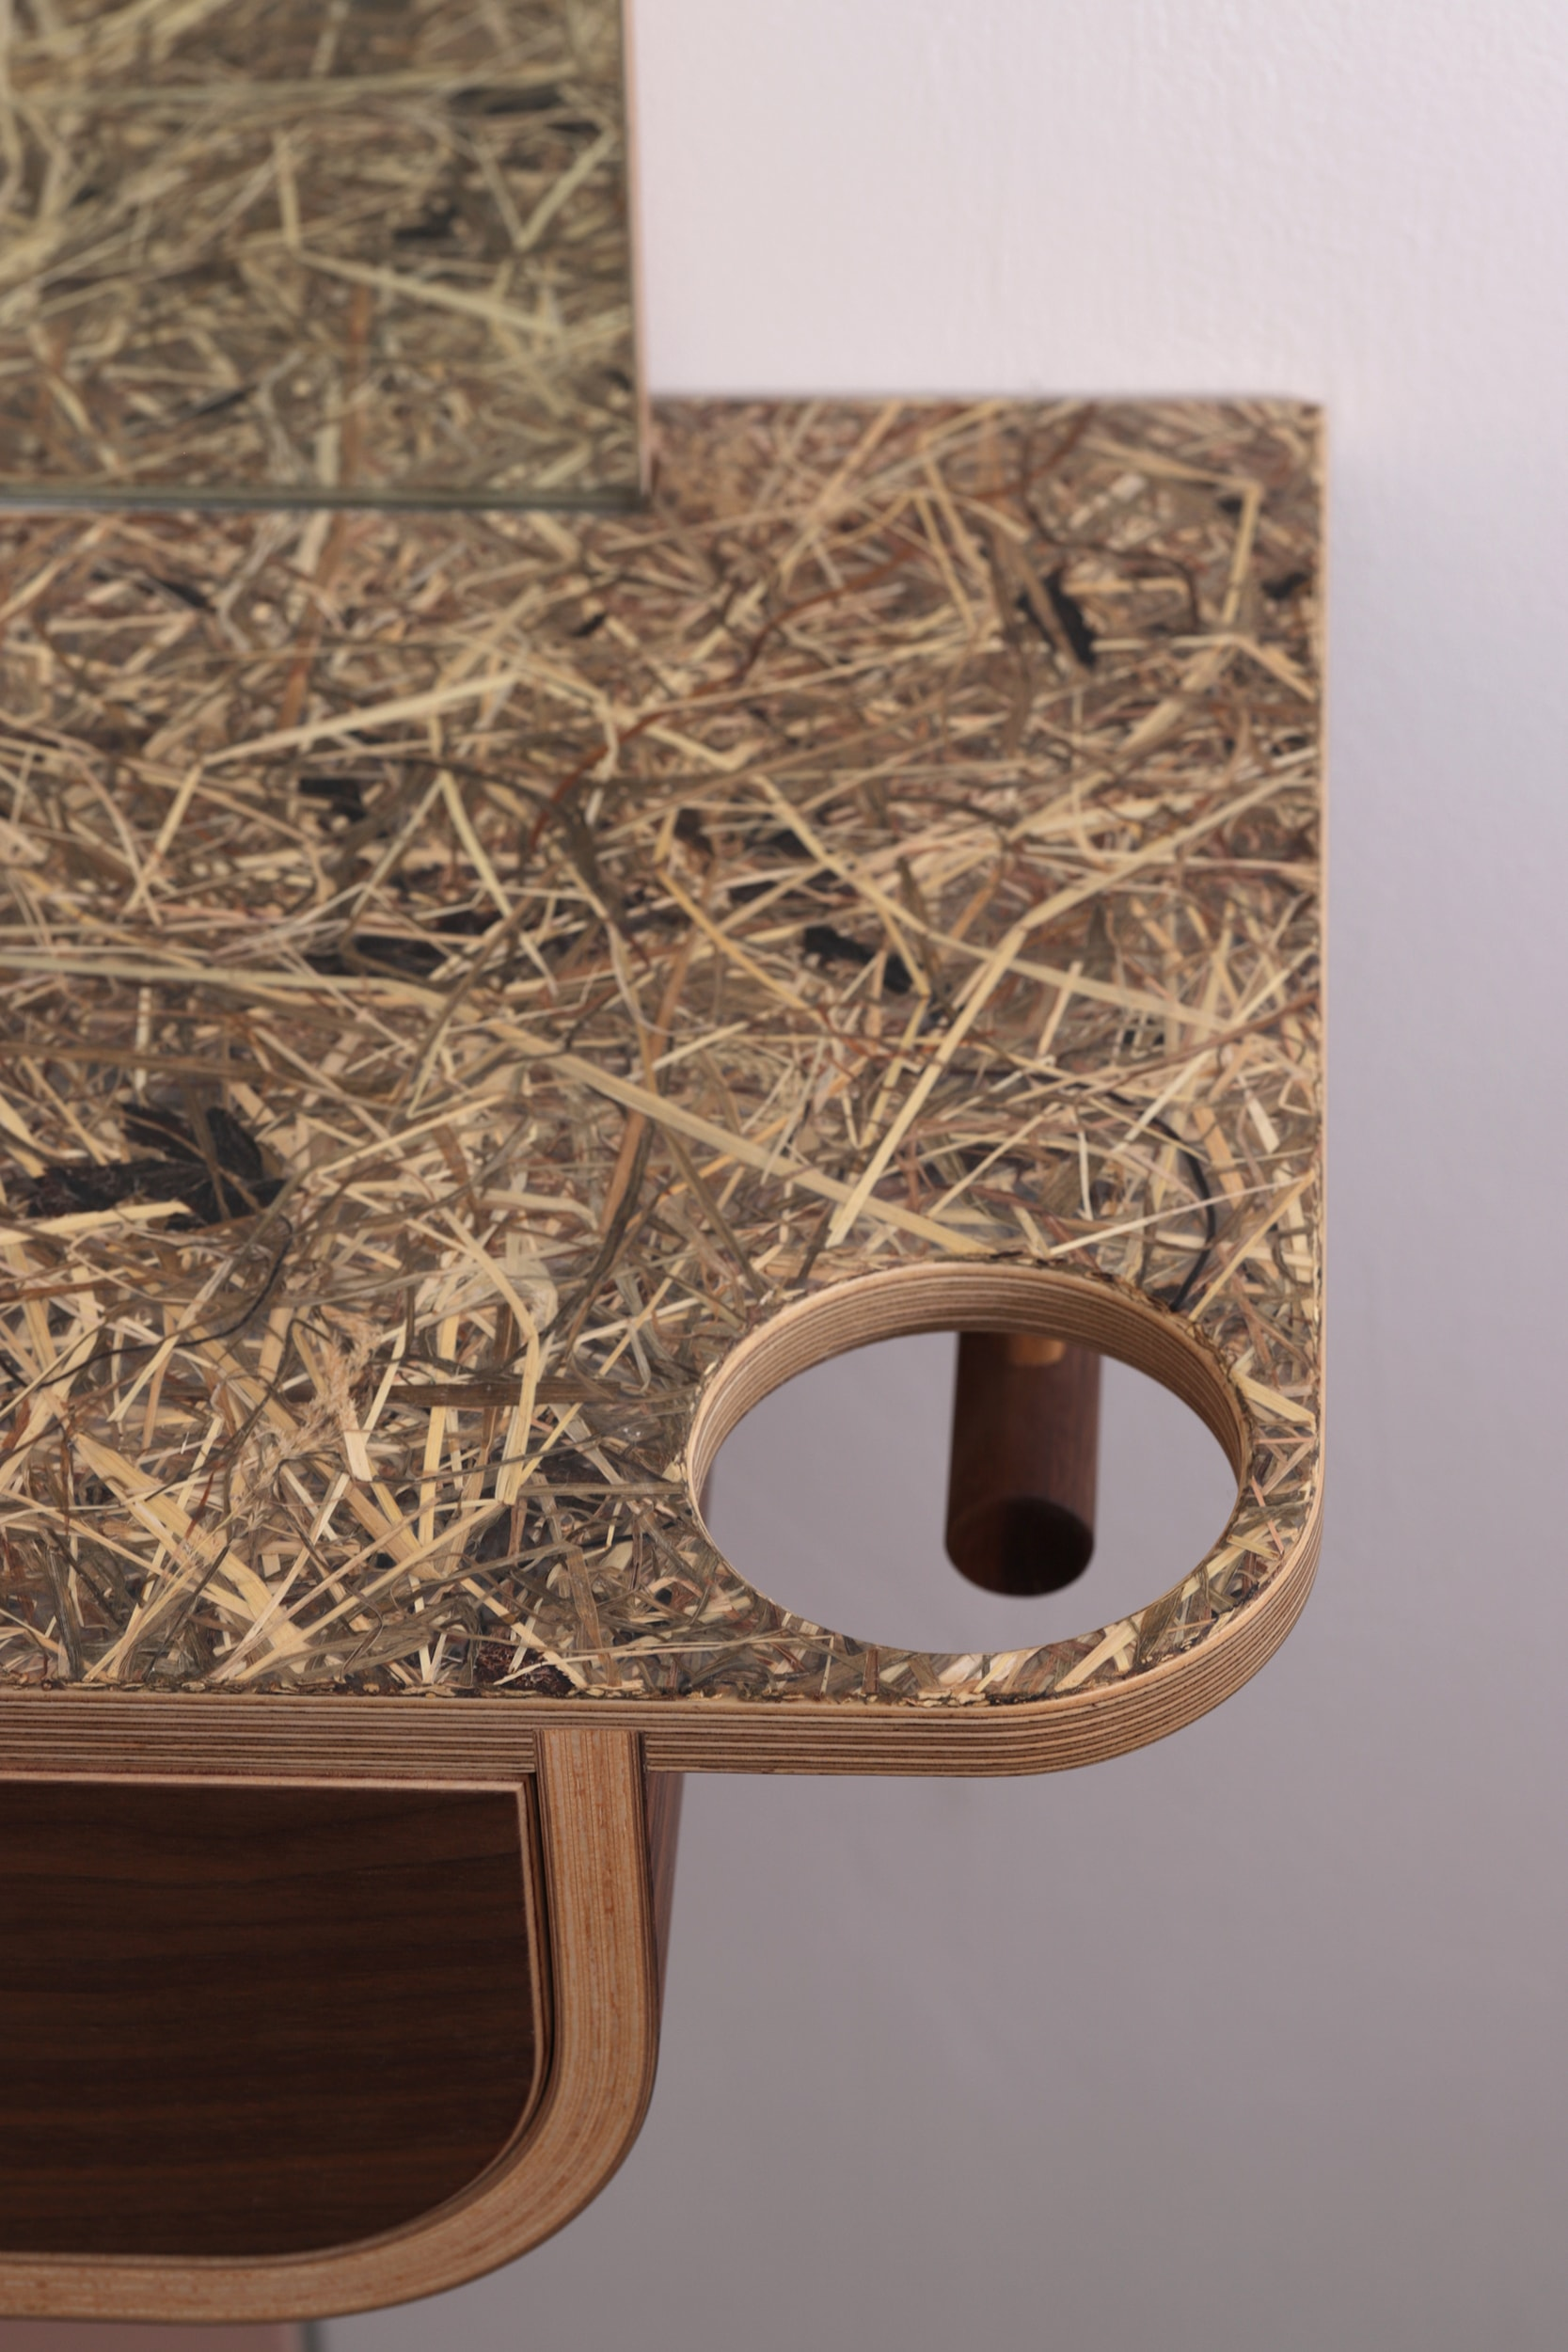 A close up of the recycled straw bio-laminate surface